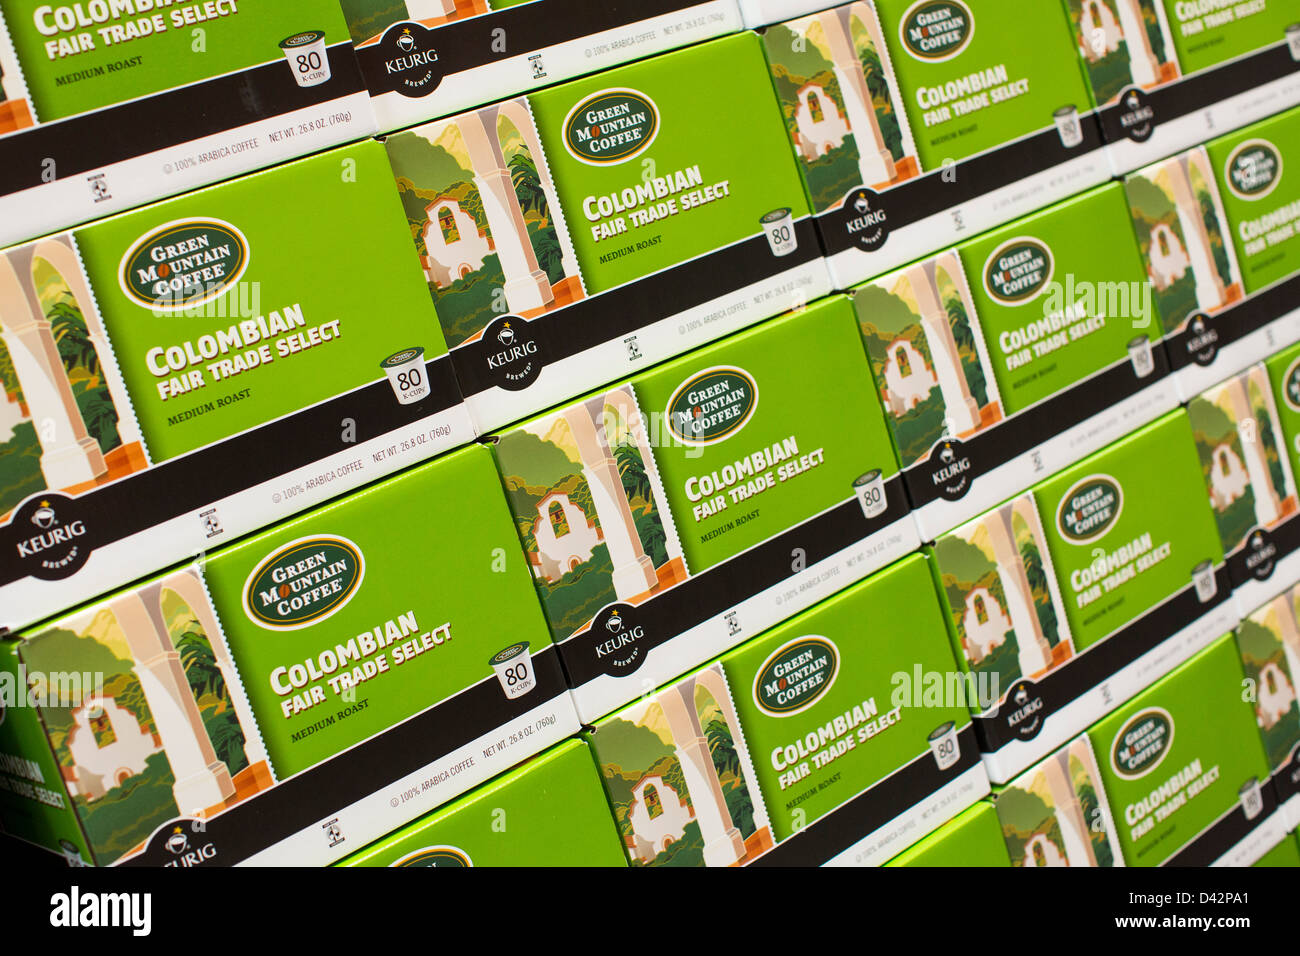 Green Mountain Coffee k-cups on display at a Costco Wholesale Warehouse Club. - Stock Image